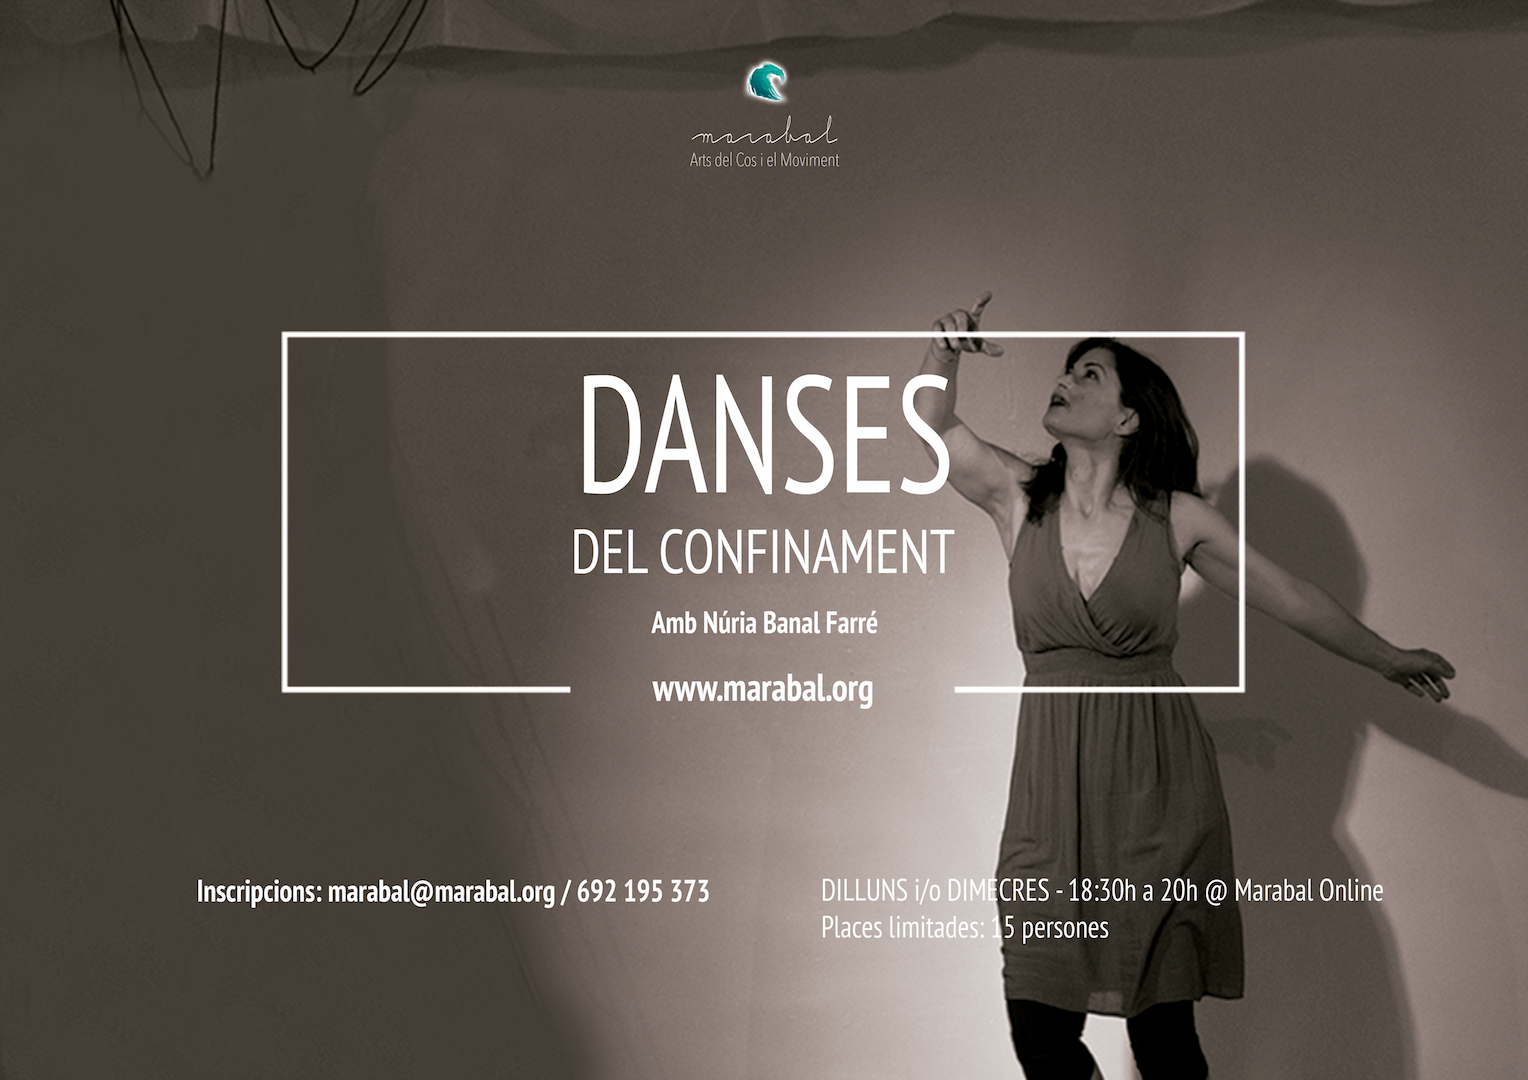 DANSES DEL CONFINAMENT